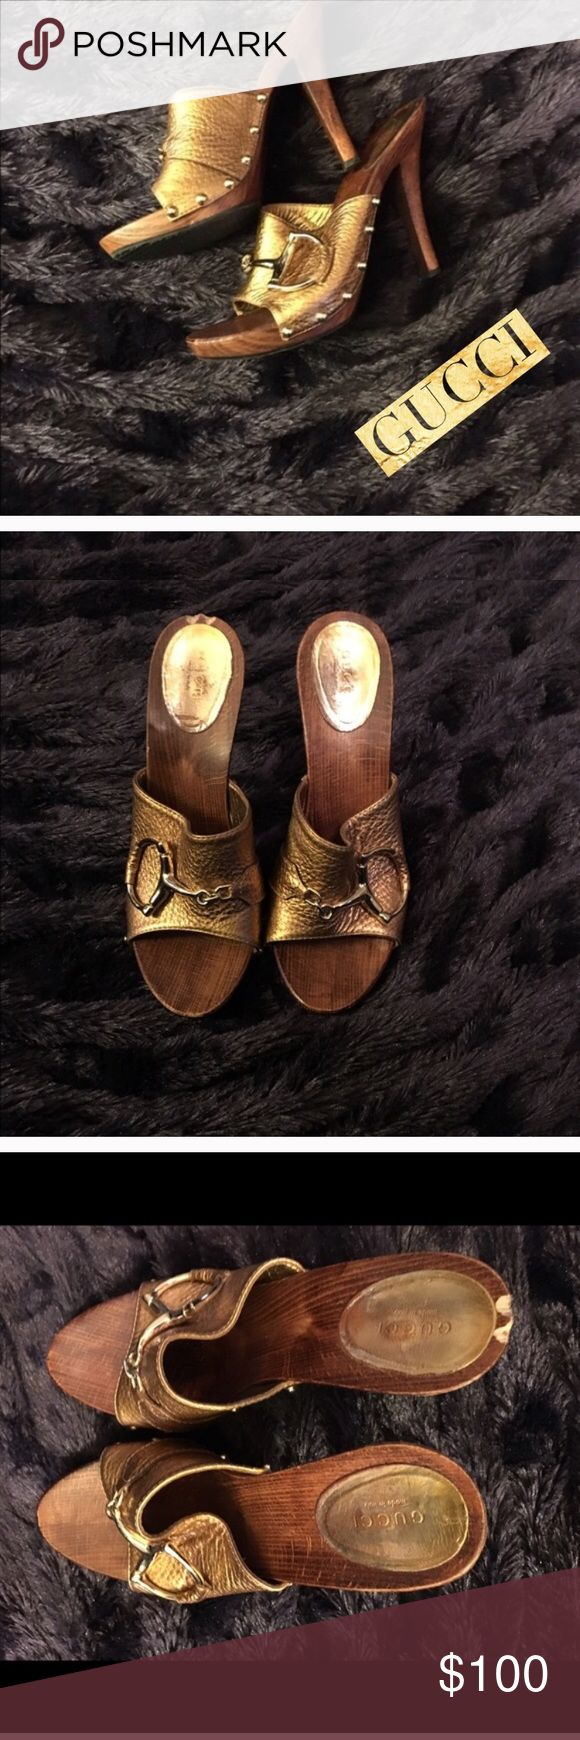 Gucci horsebit heels originally $650 I just purchased these from posh. My foot is a tad wide for them.  I have copied the original listing for your view. You can't notice the chip when they're on. I'm losing money posting them lower but I've seen offers of $100 for these and firm on selling them for that price. They're gorgeous and I'm so sad they are too tight 😢 Gucci Shoes Heels